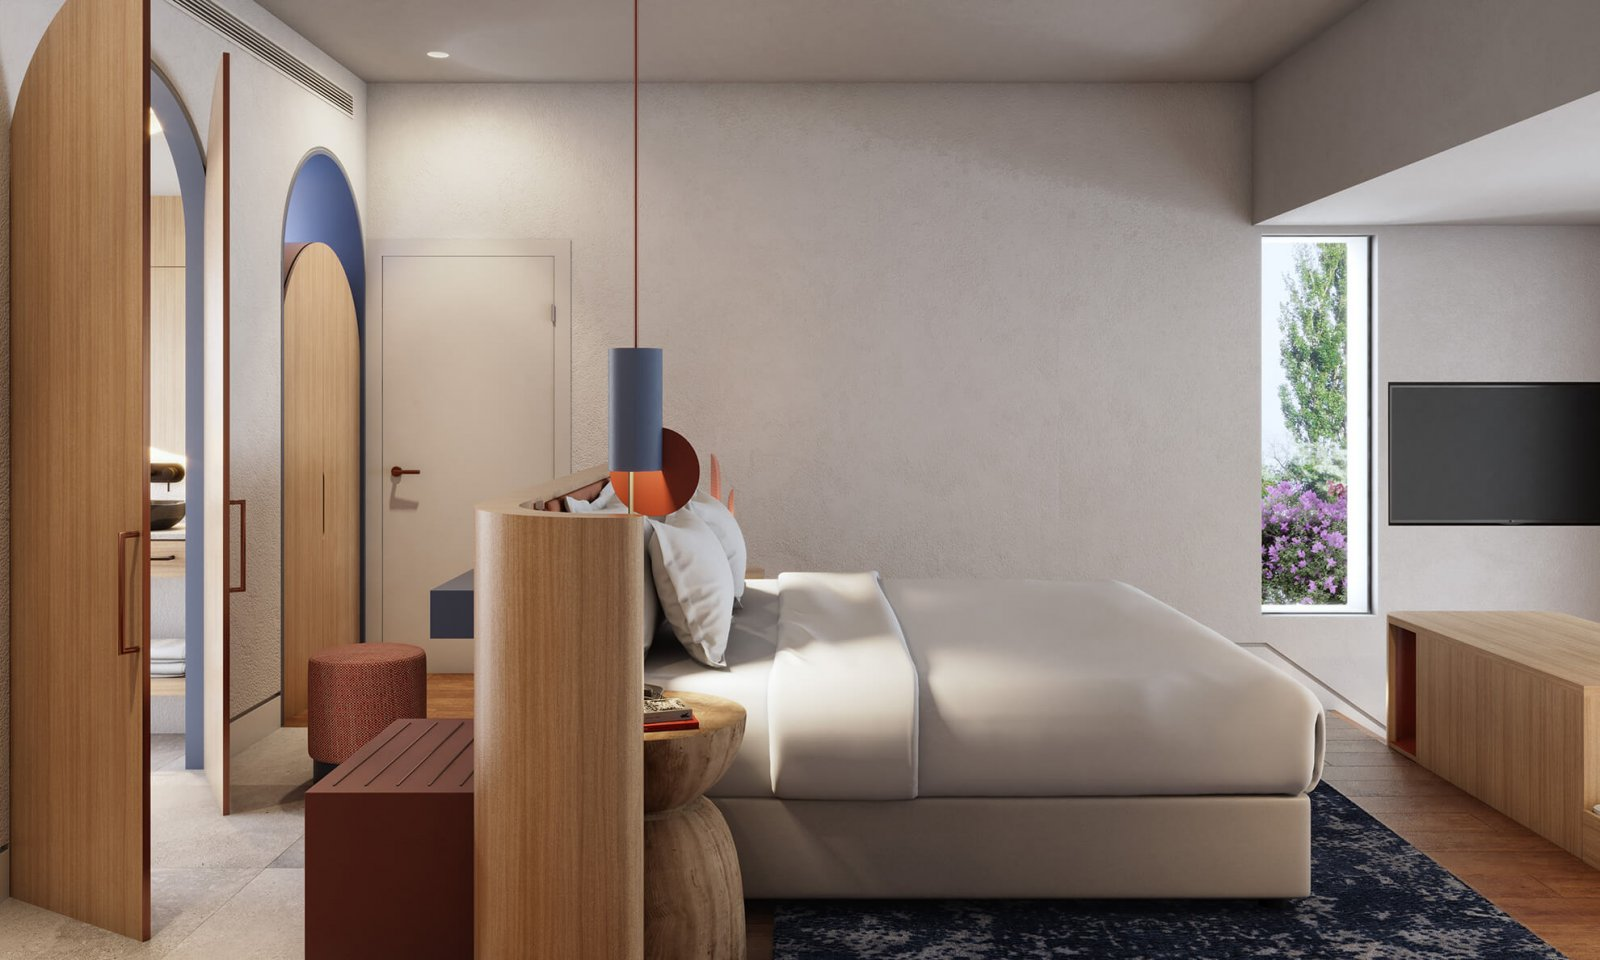 Another view of the room of the Sotogrande